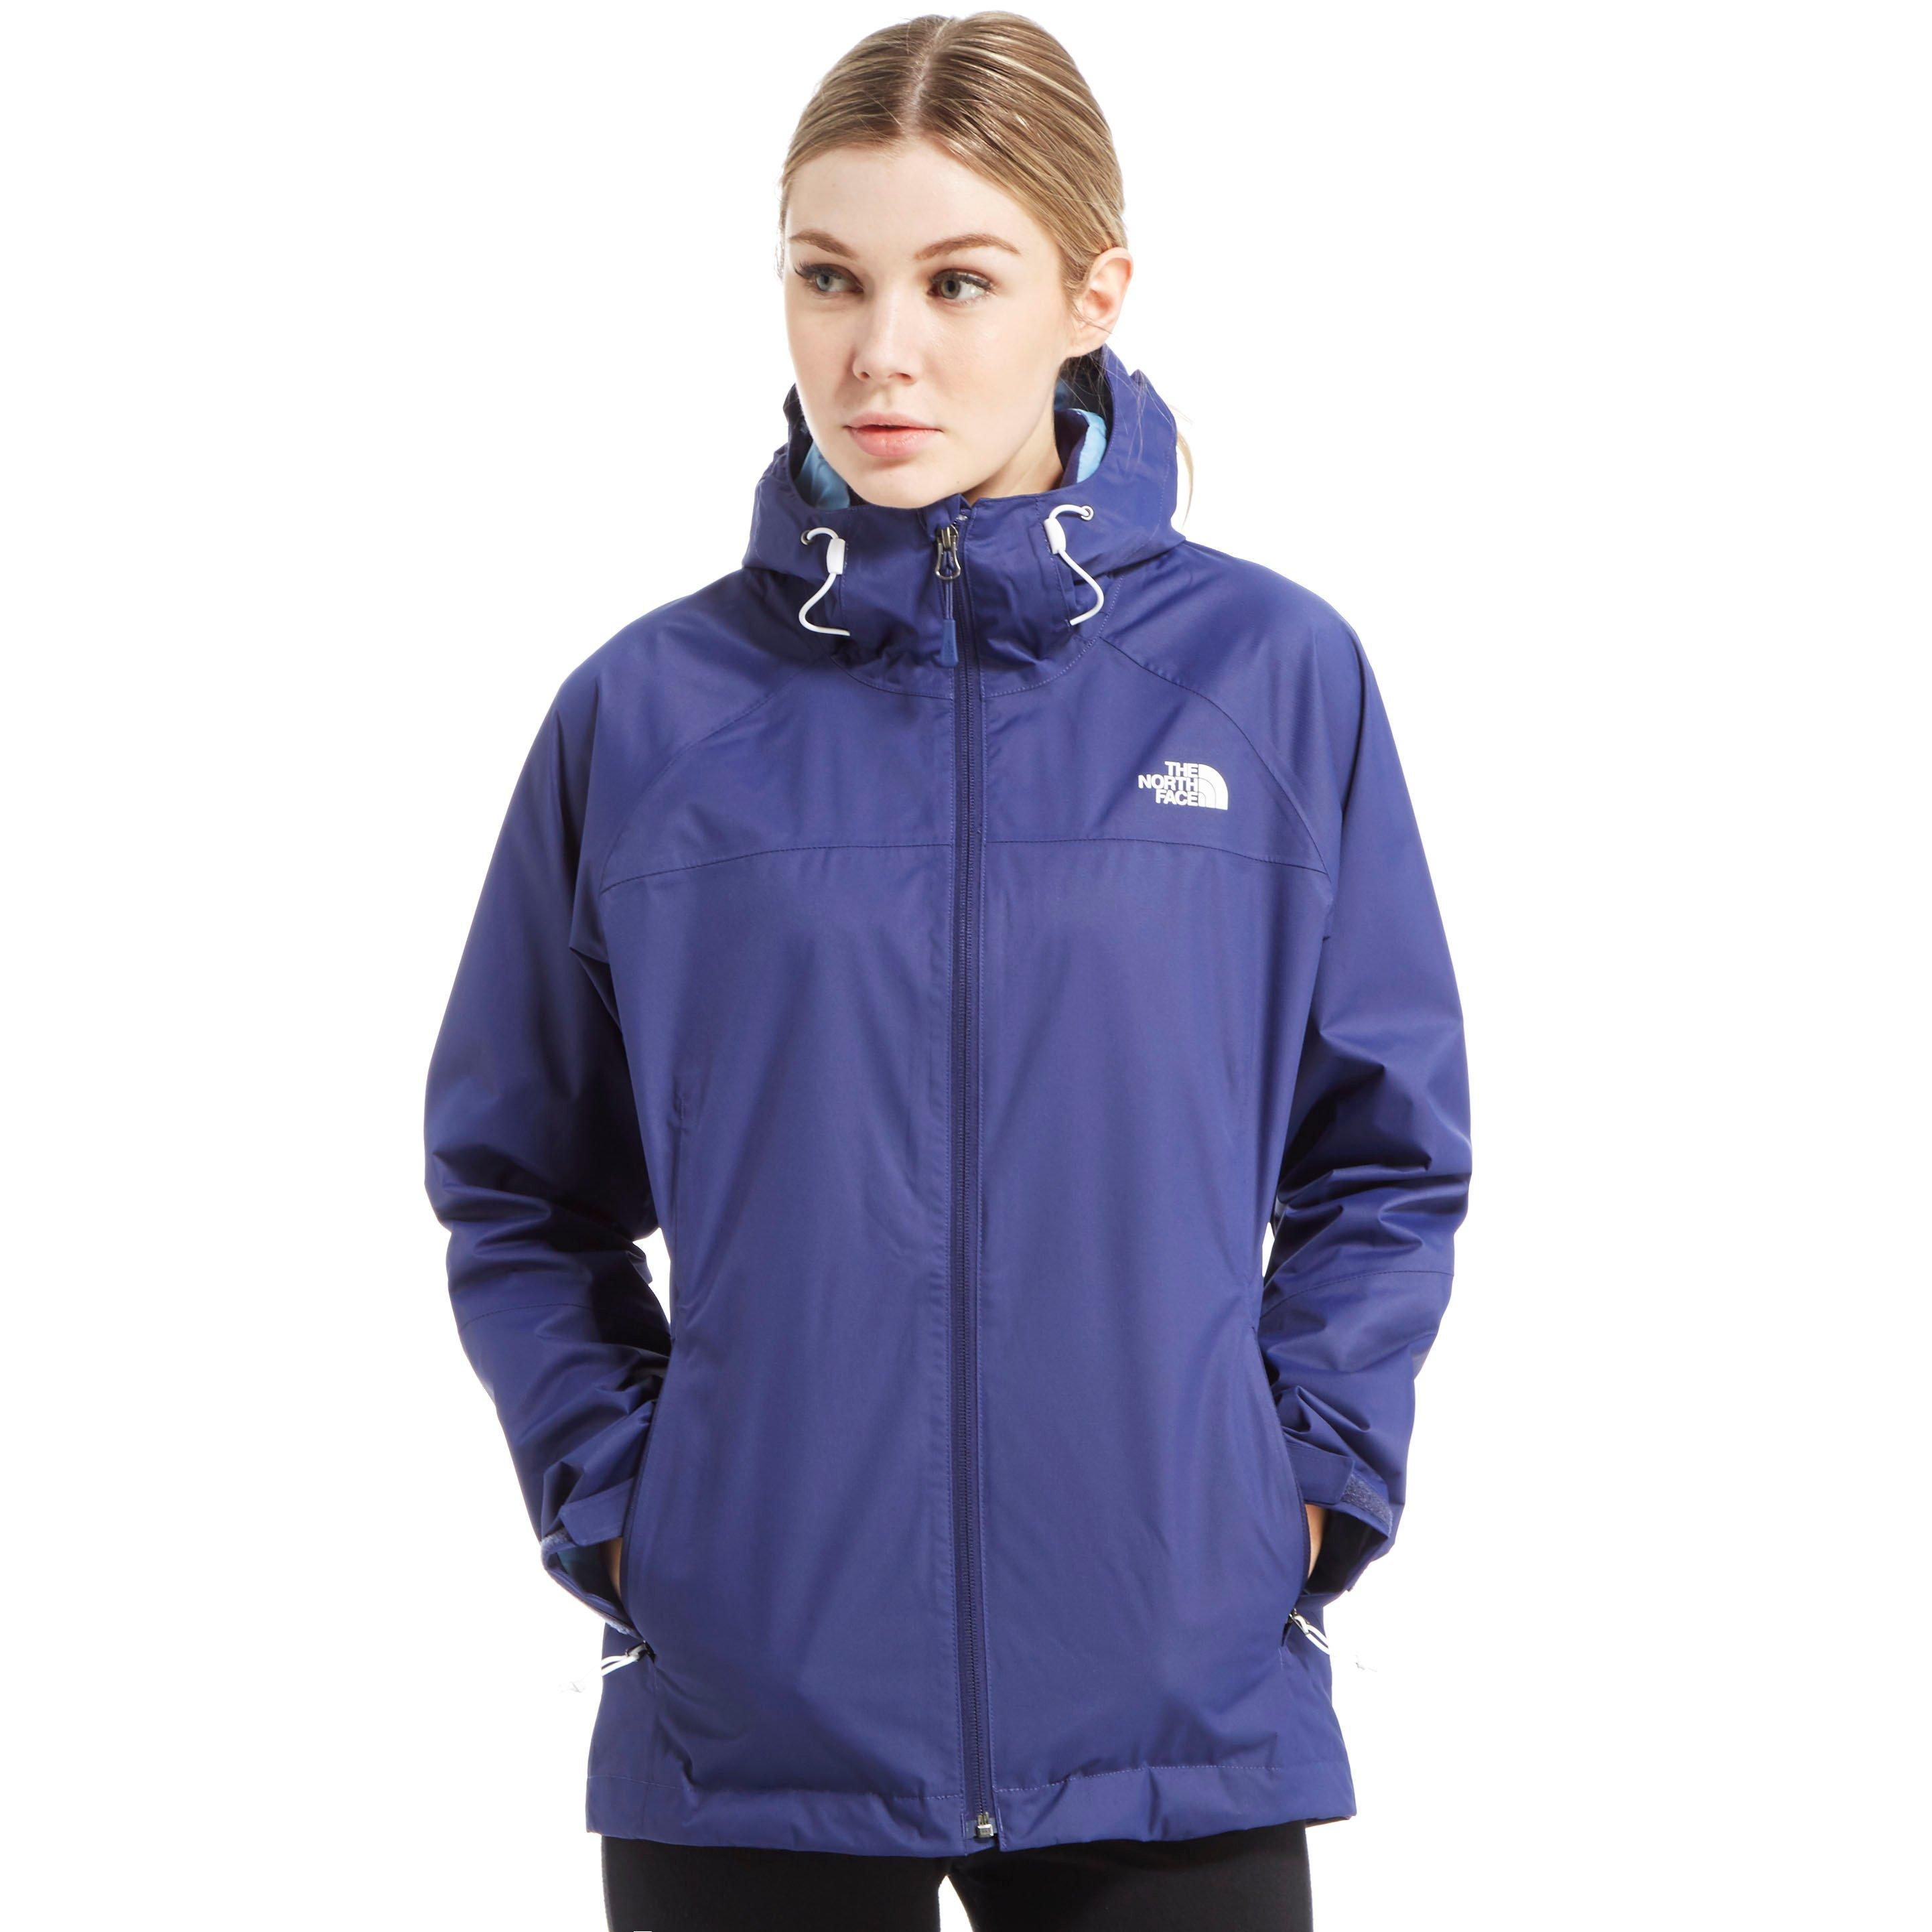 the north face womens jacket price comparison results. Black Bedroom Furniture Sets. Home Design Ideas